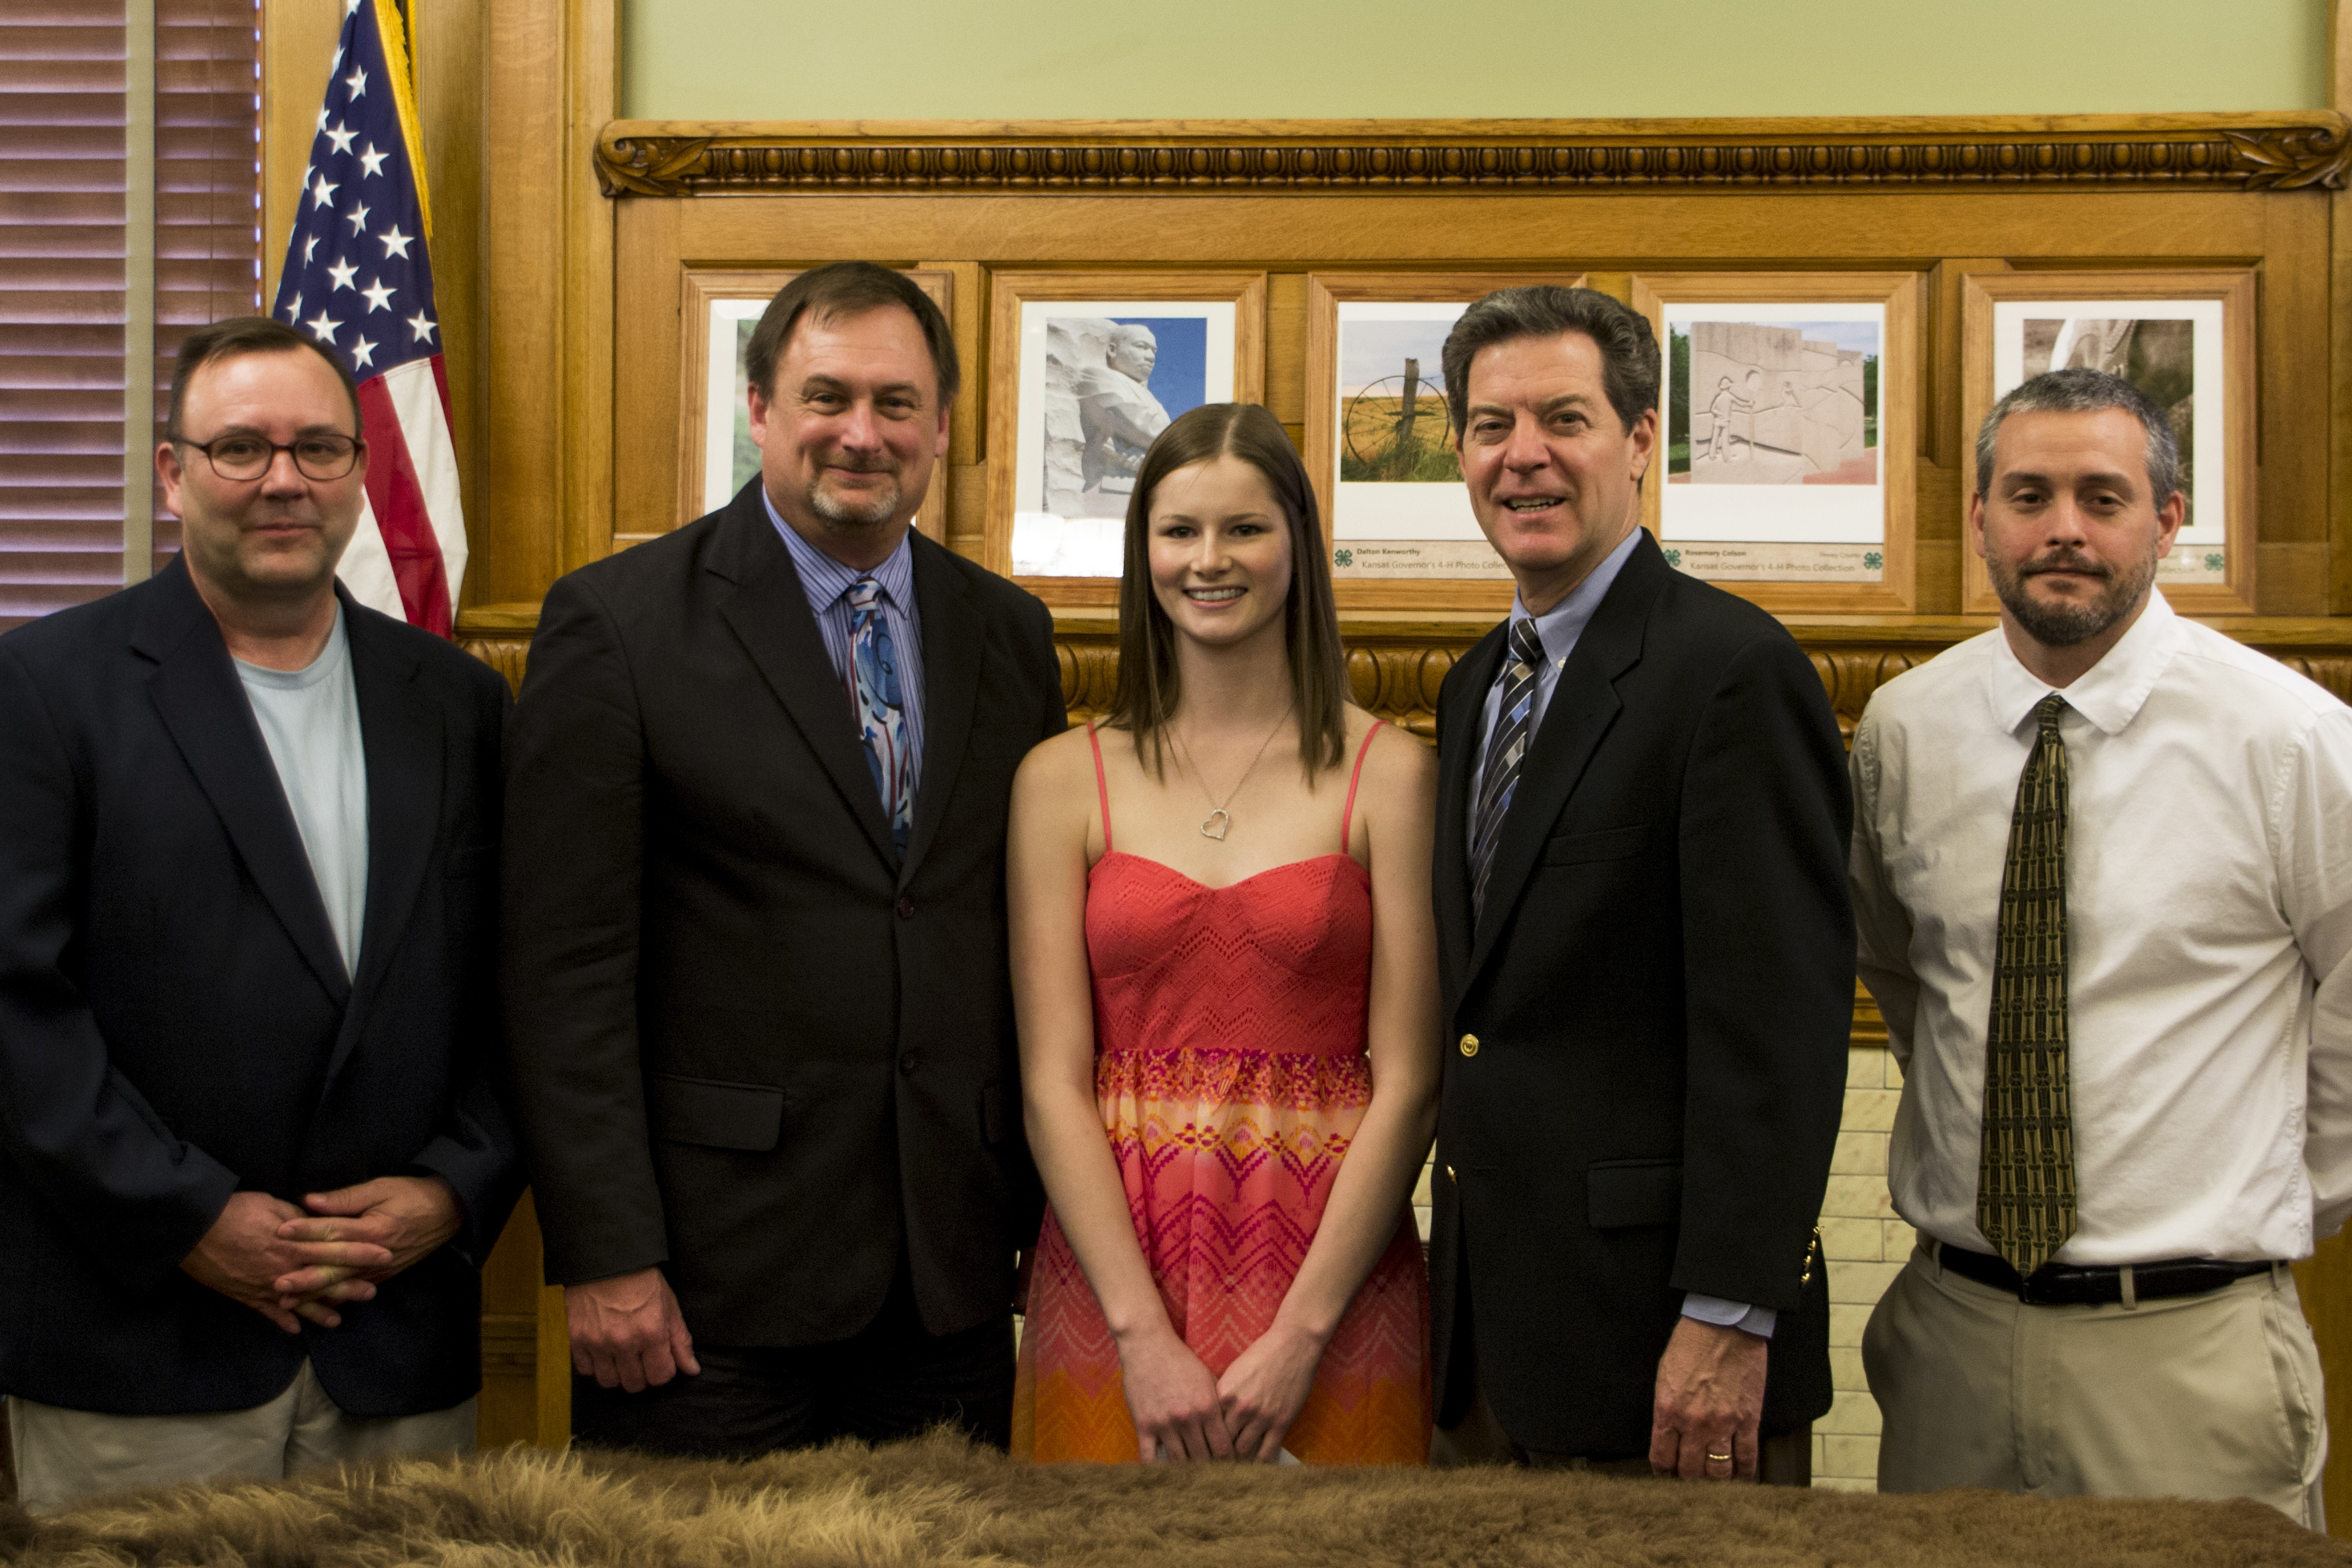 Governor Brownback posing for a photo with JAG participant and administrators.